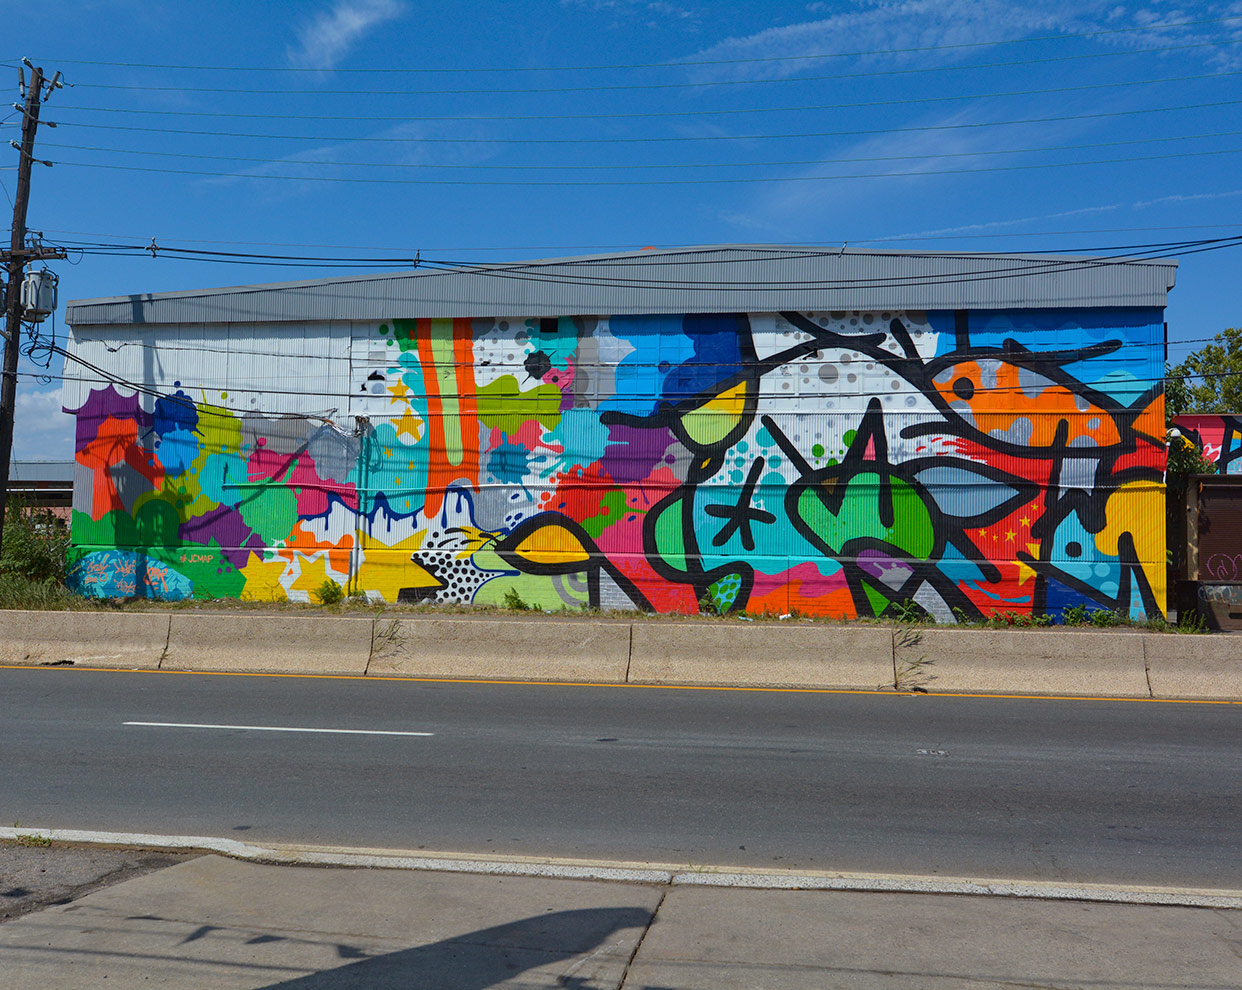 """Inside Look at Jersey City's Burgeoning Street Art. """"To JC, With Love,"""" collaboration by John CRASH Matos and JM Rizzi. 725 Tonnelle Ave. Photo by Canvs, used with permission from Jersey City Mural Arts Program."""